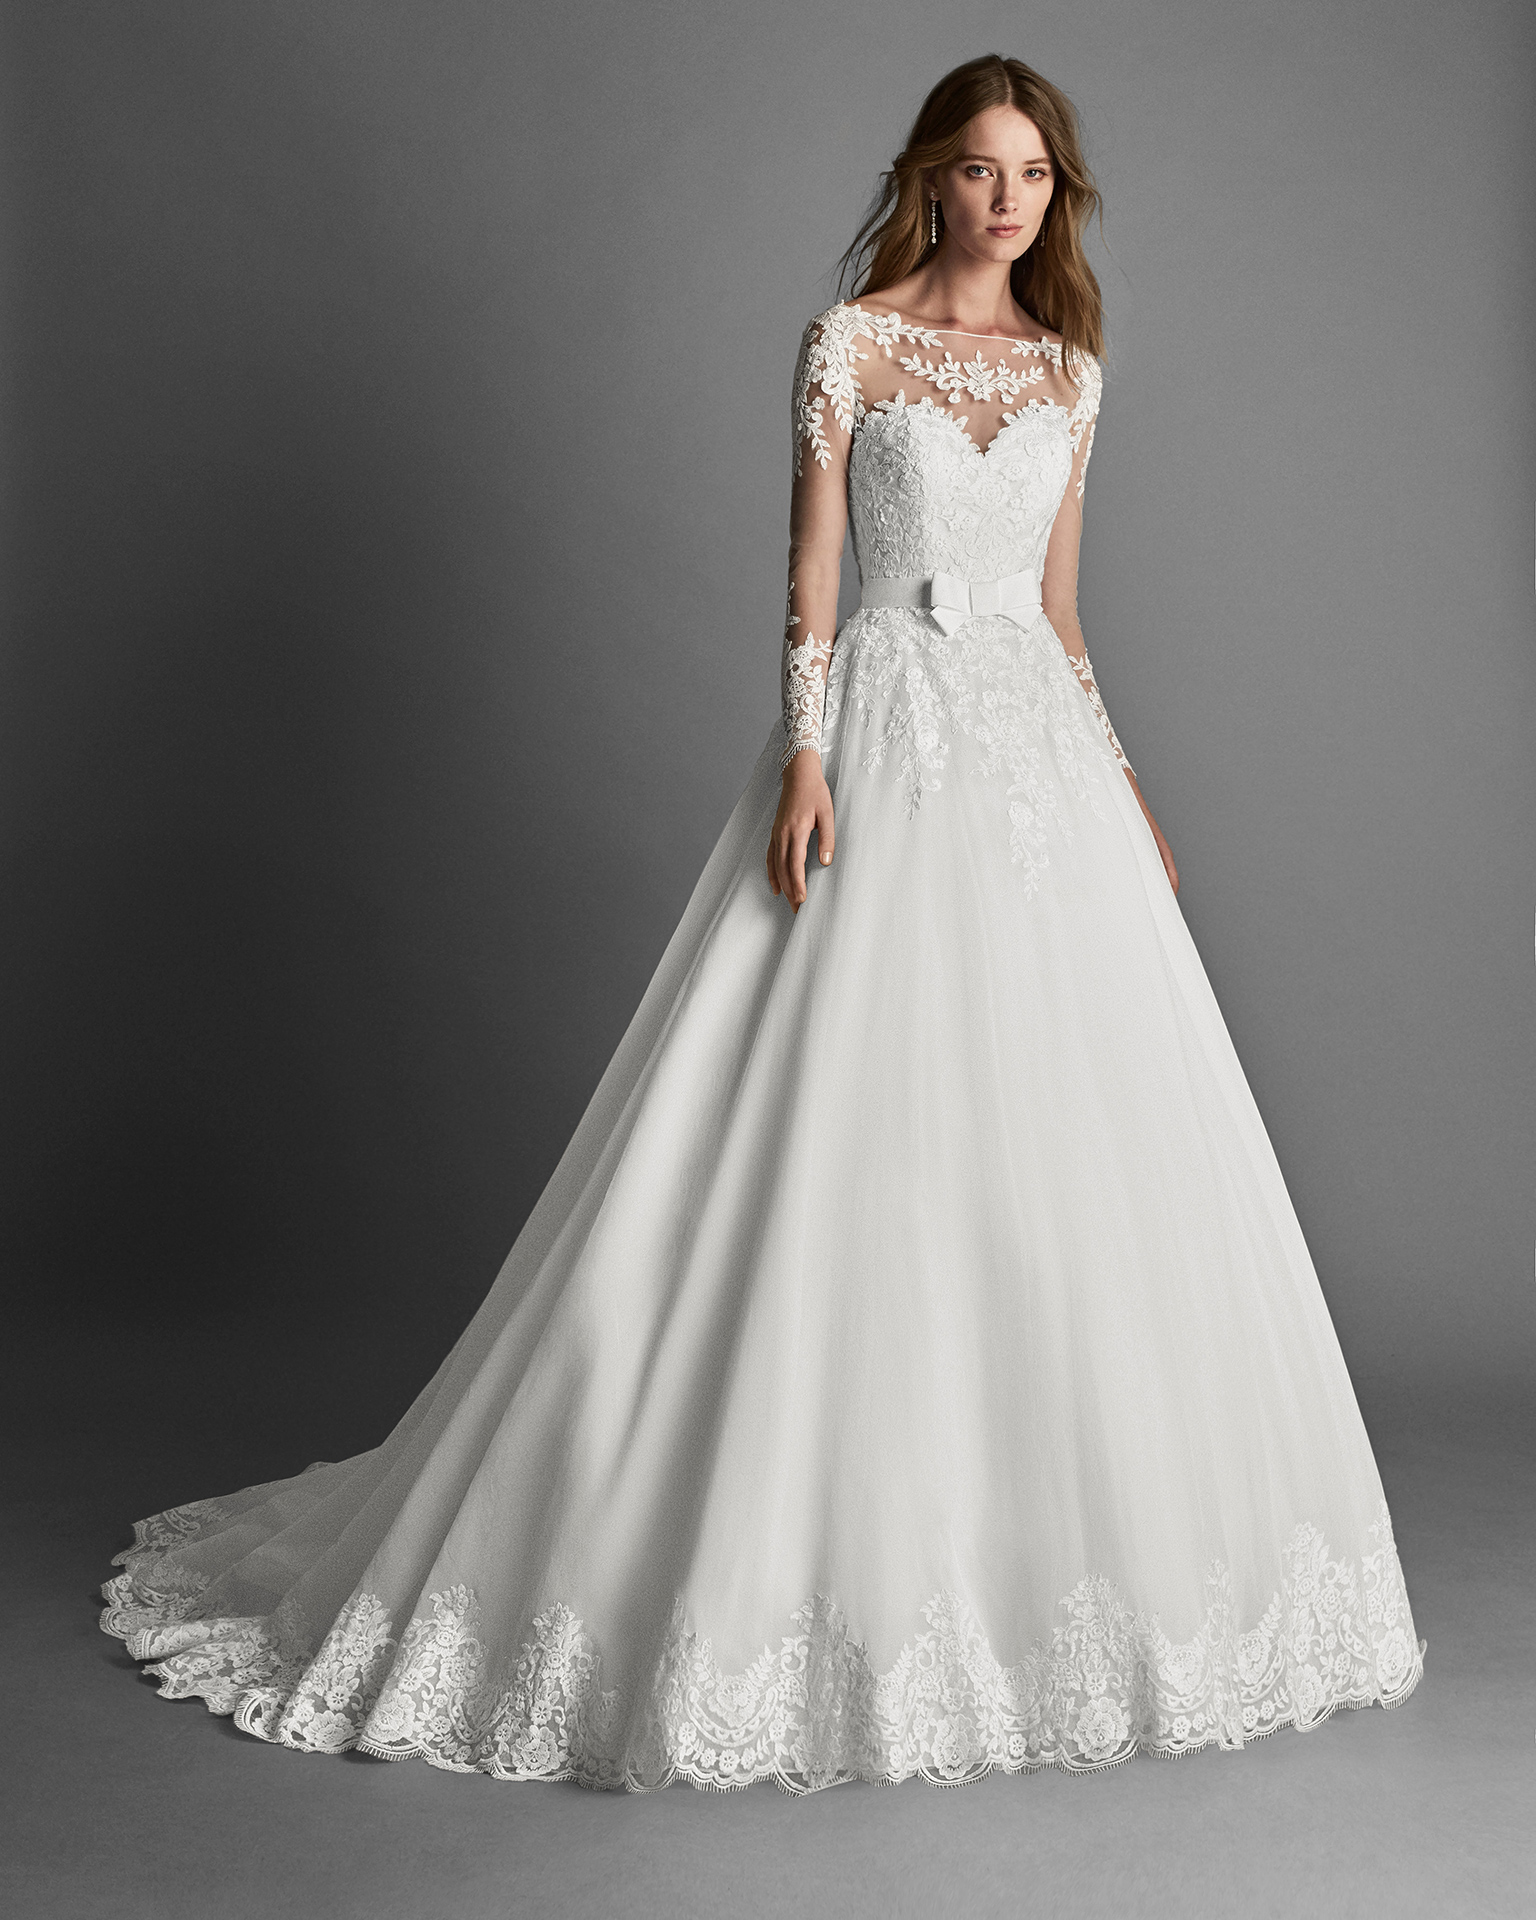 Princess-style garza and lace wedding dress with long sleeves and lace appliqués.